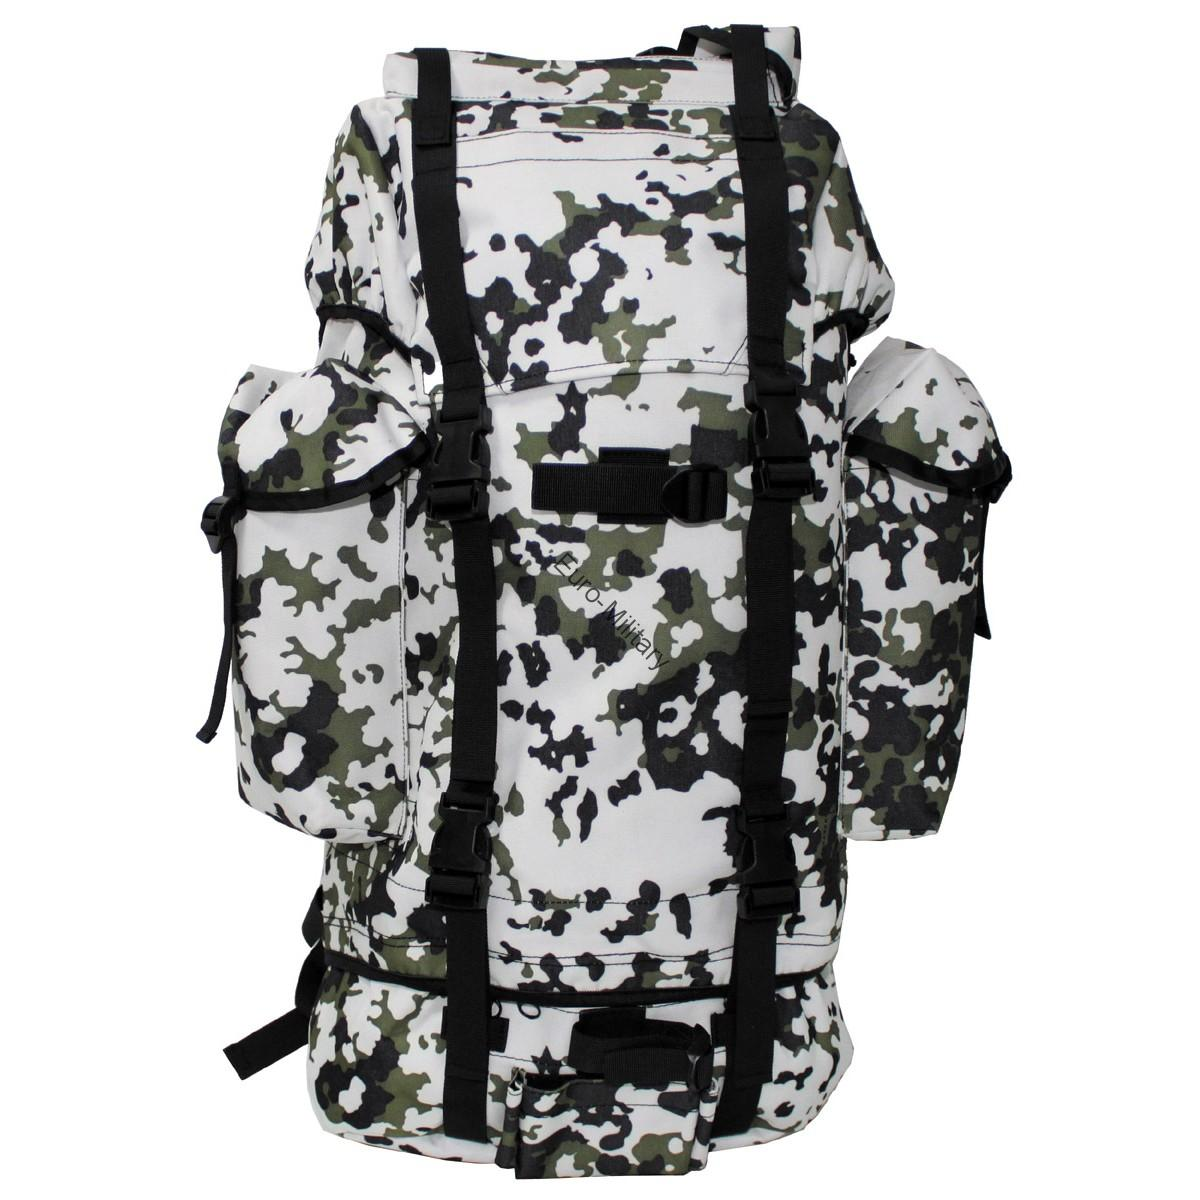 Military Patrol Expedition Backpack Large 65L - Winter Camo